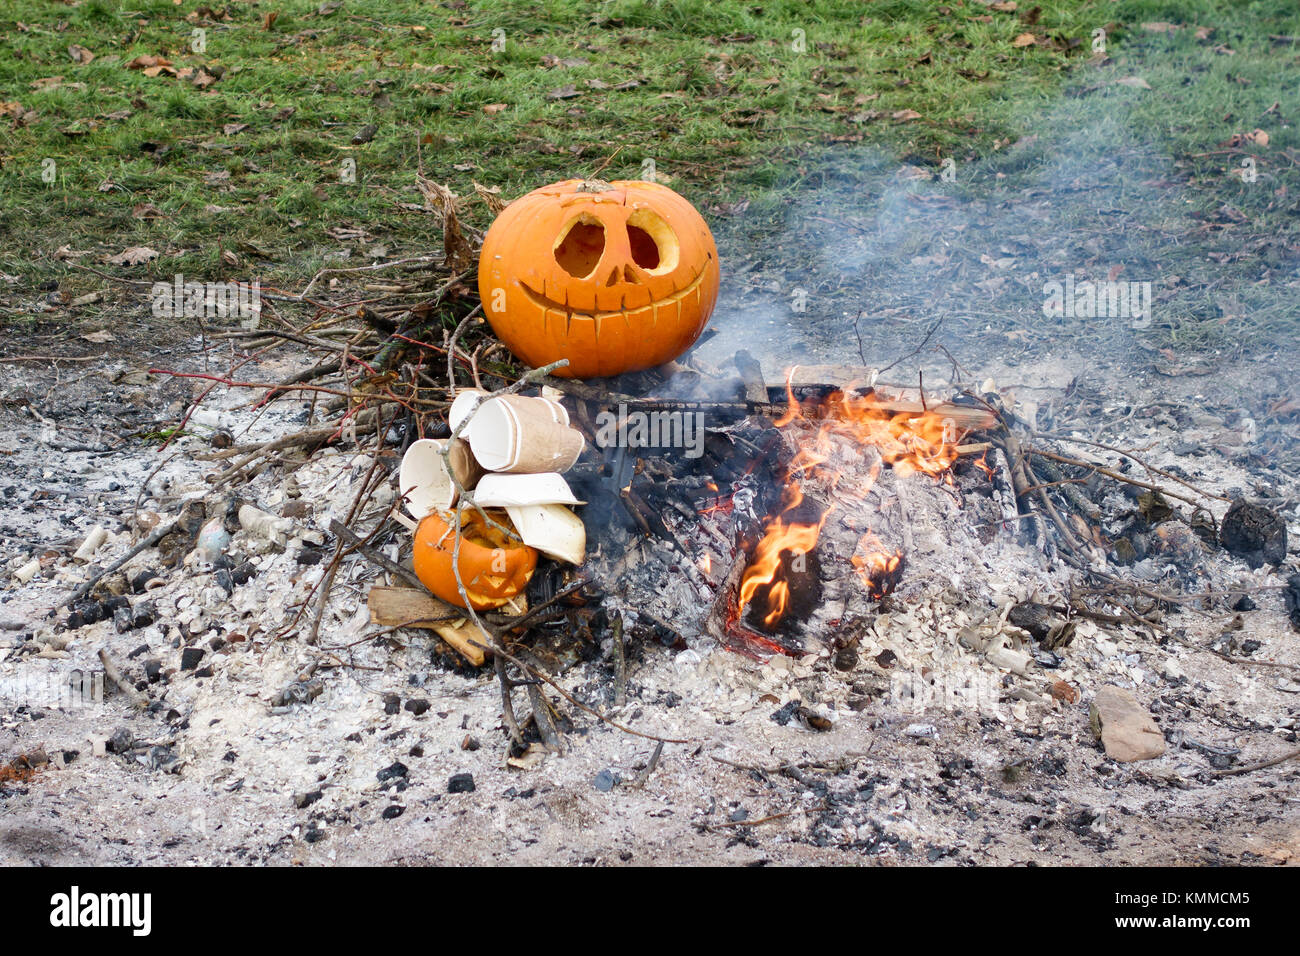 UK. Pumpkins and other litter being burned the morning after a Halloween party - Stock Image